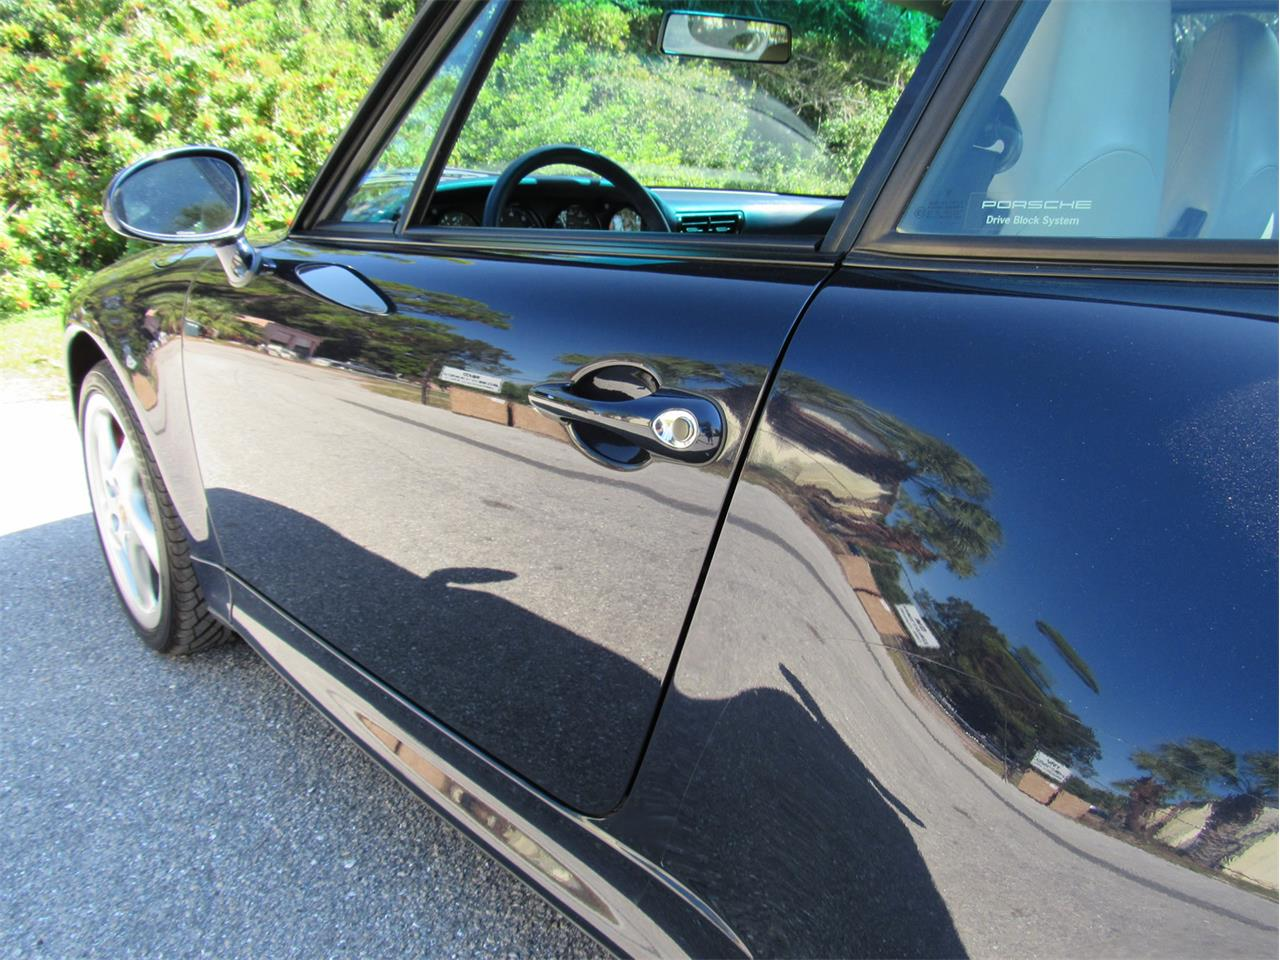 Large Picture of '96 Porsche 993/911 Carrera Turbo - $209,900.00 Offered by Vintage Motors Sarasota - MCL2